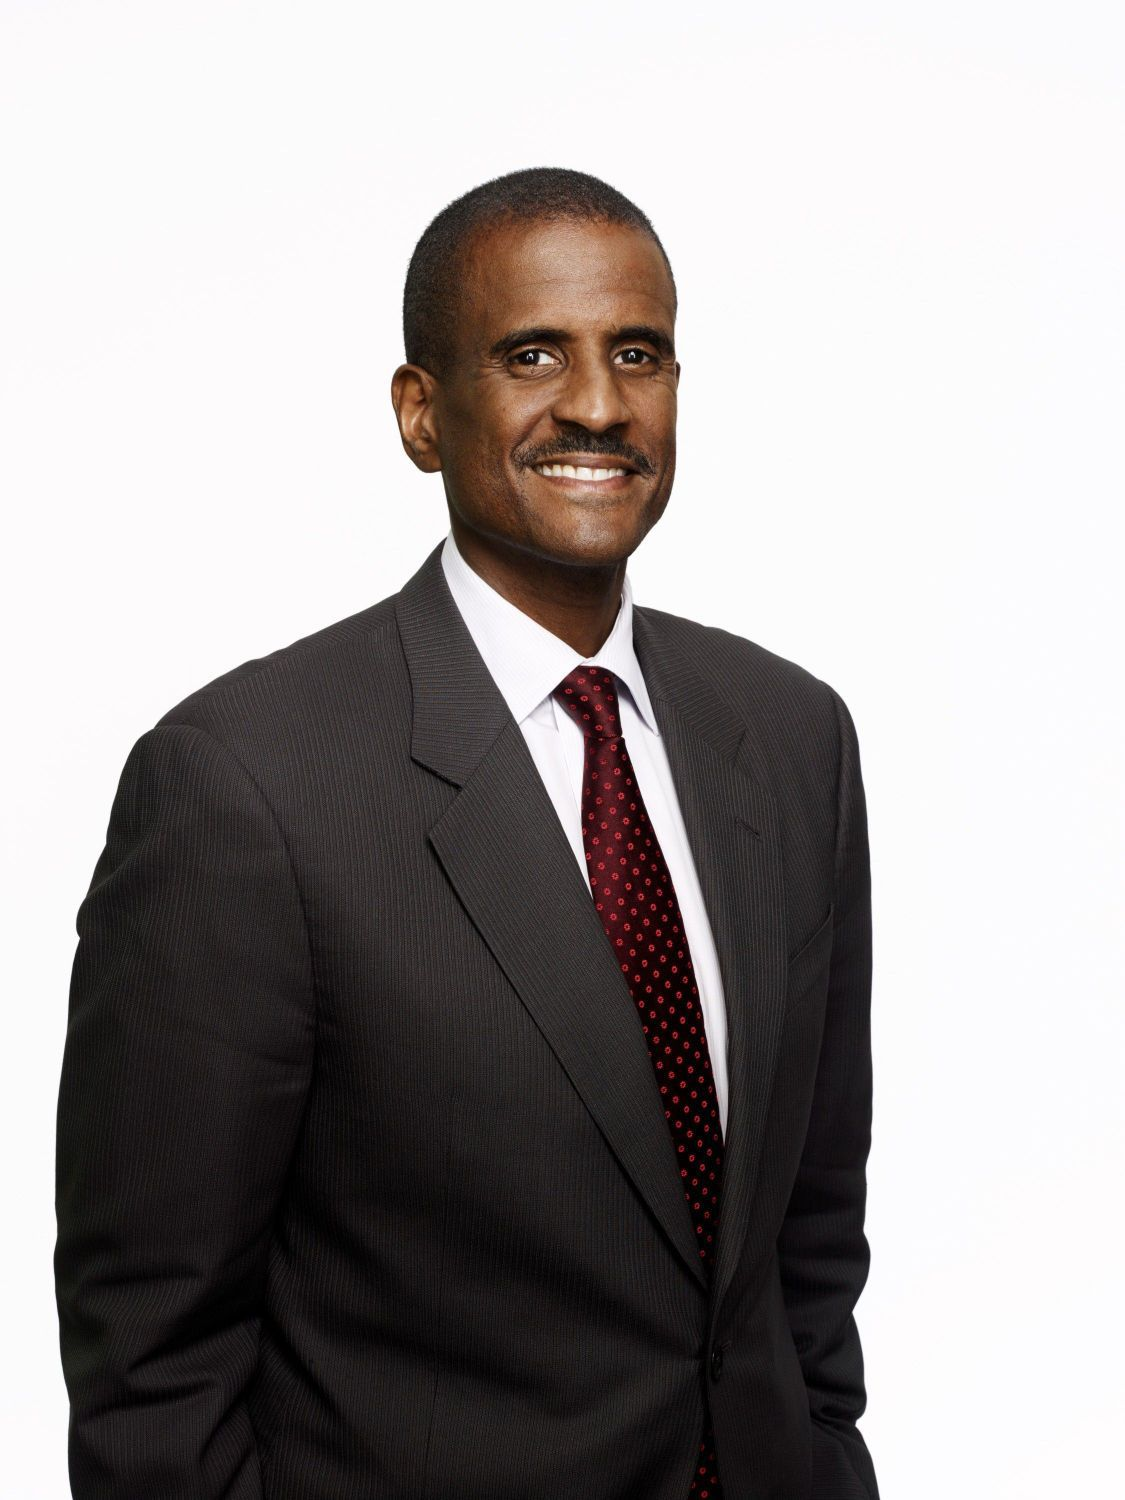 david aldridge height